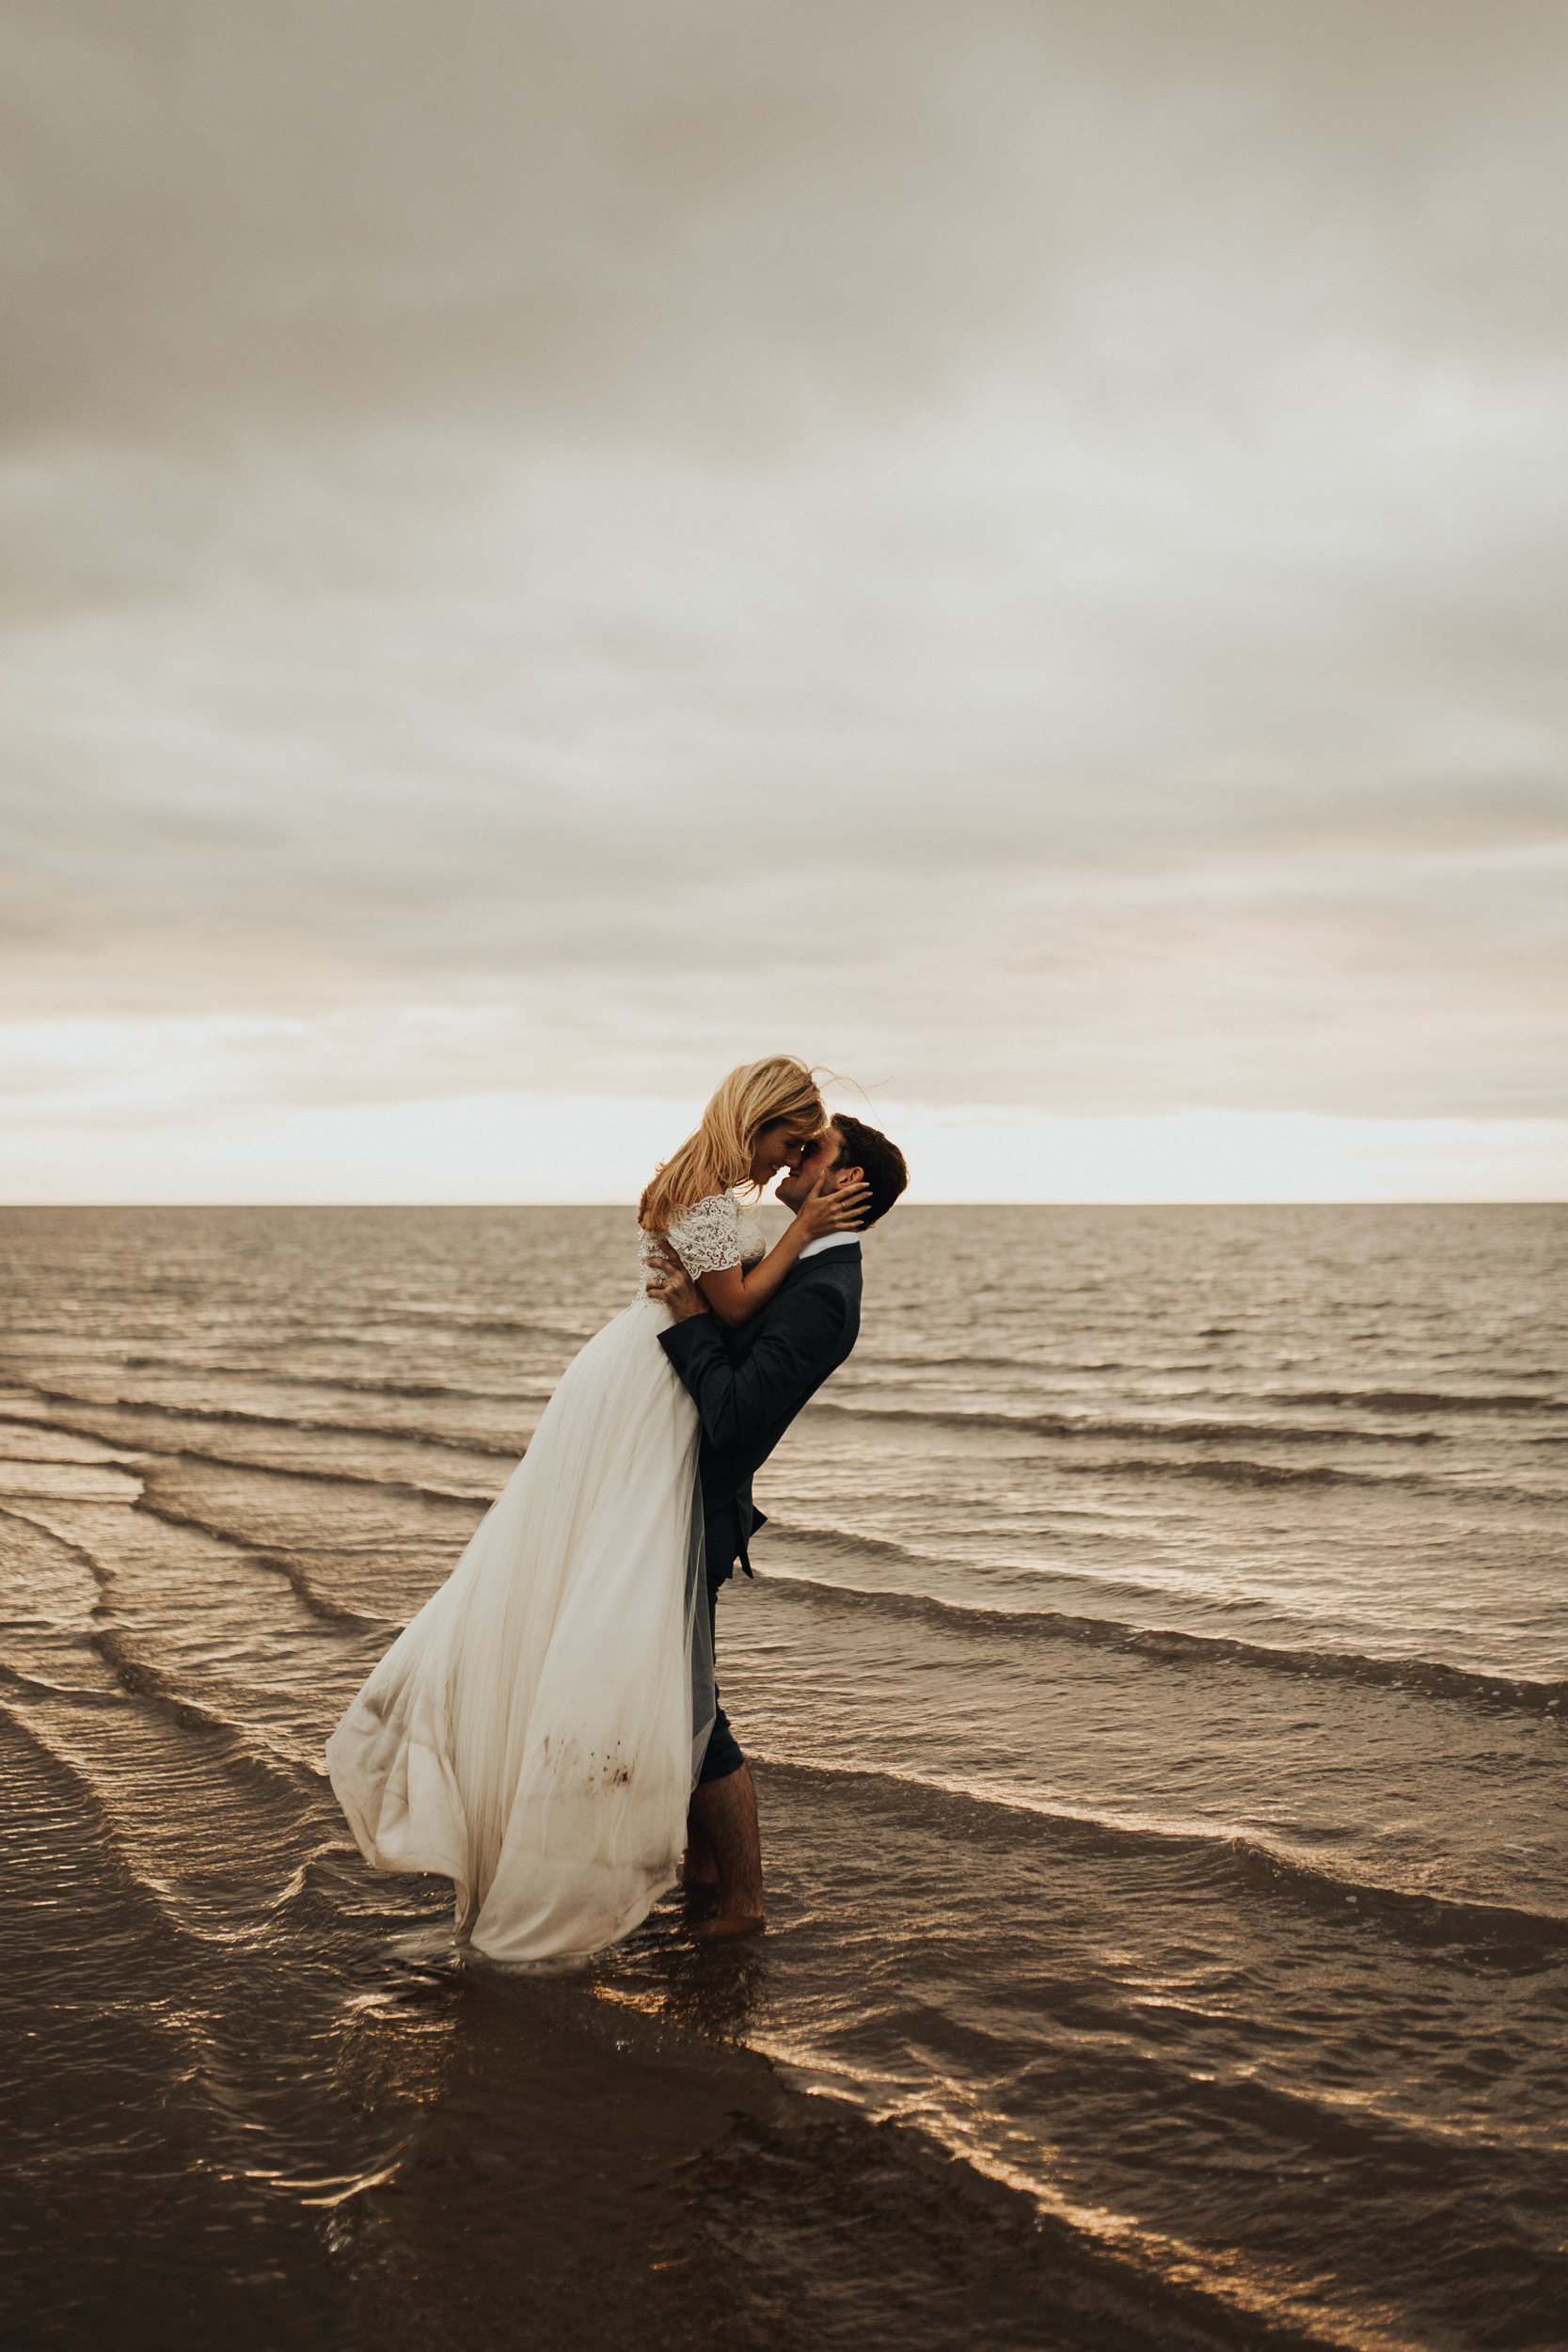 Claire-Clive-Wedding-Norfolk-Beach-Session-Love-Darina-Stoda-Photography-198.jpg